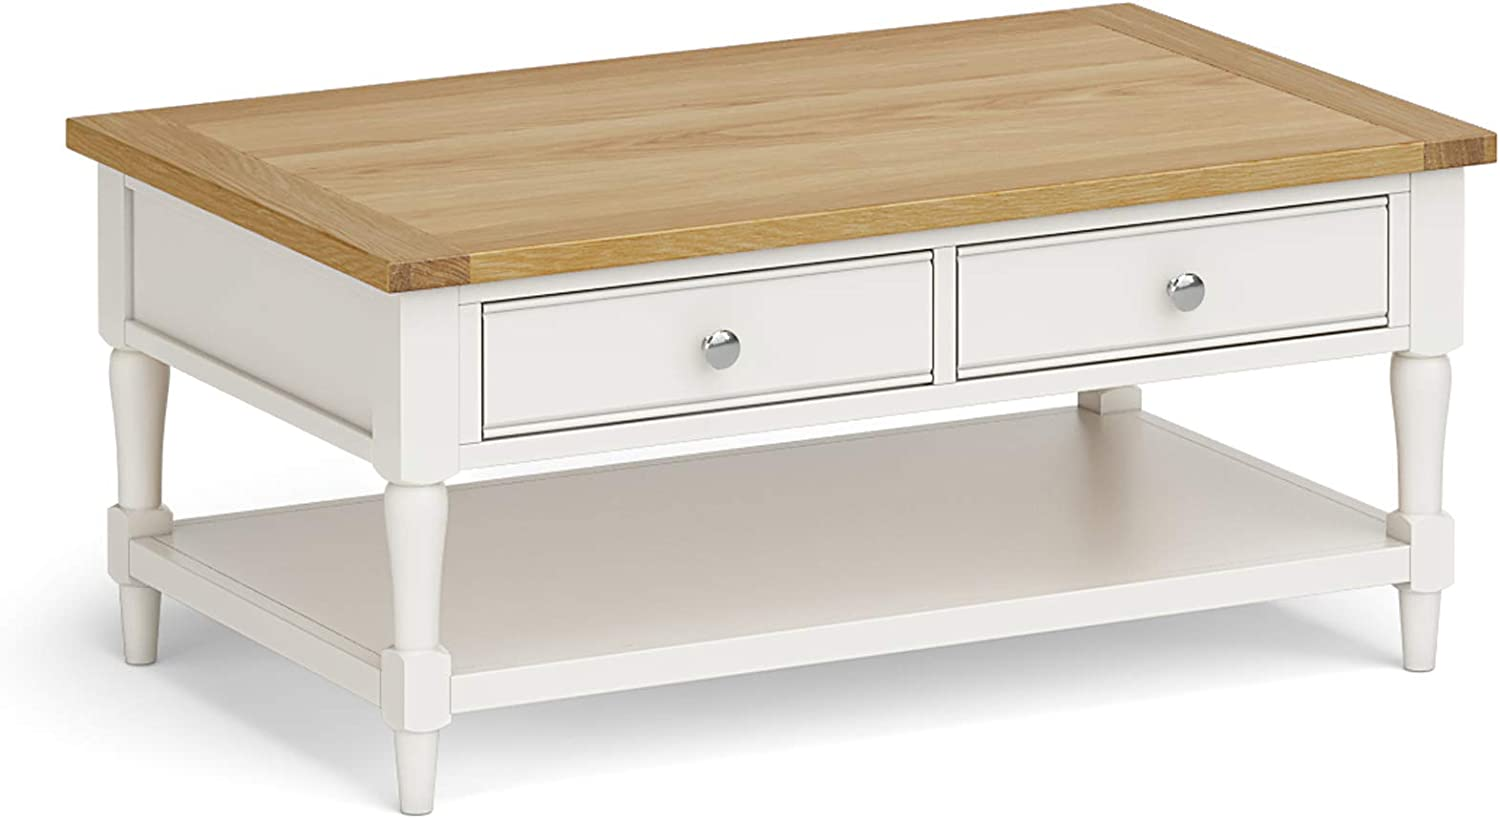 - RoselandFurniture Chichester Painted Coffee Table - Oak Top - Two